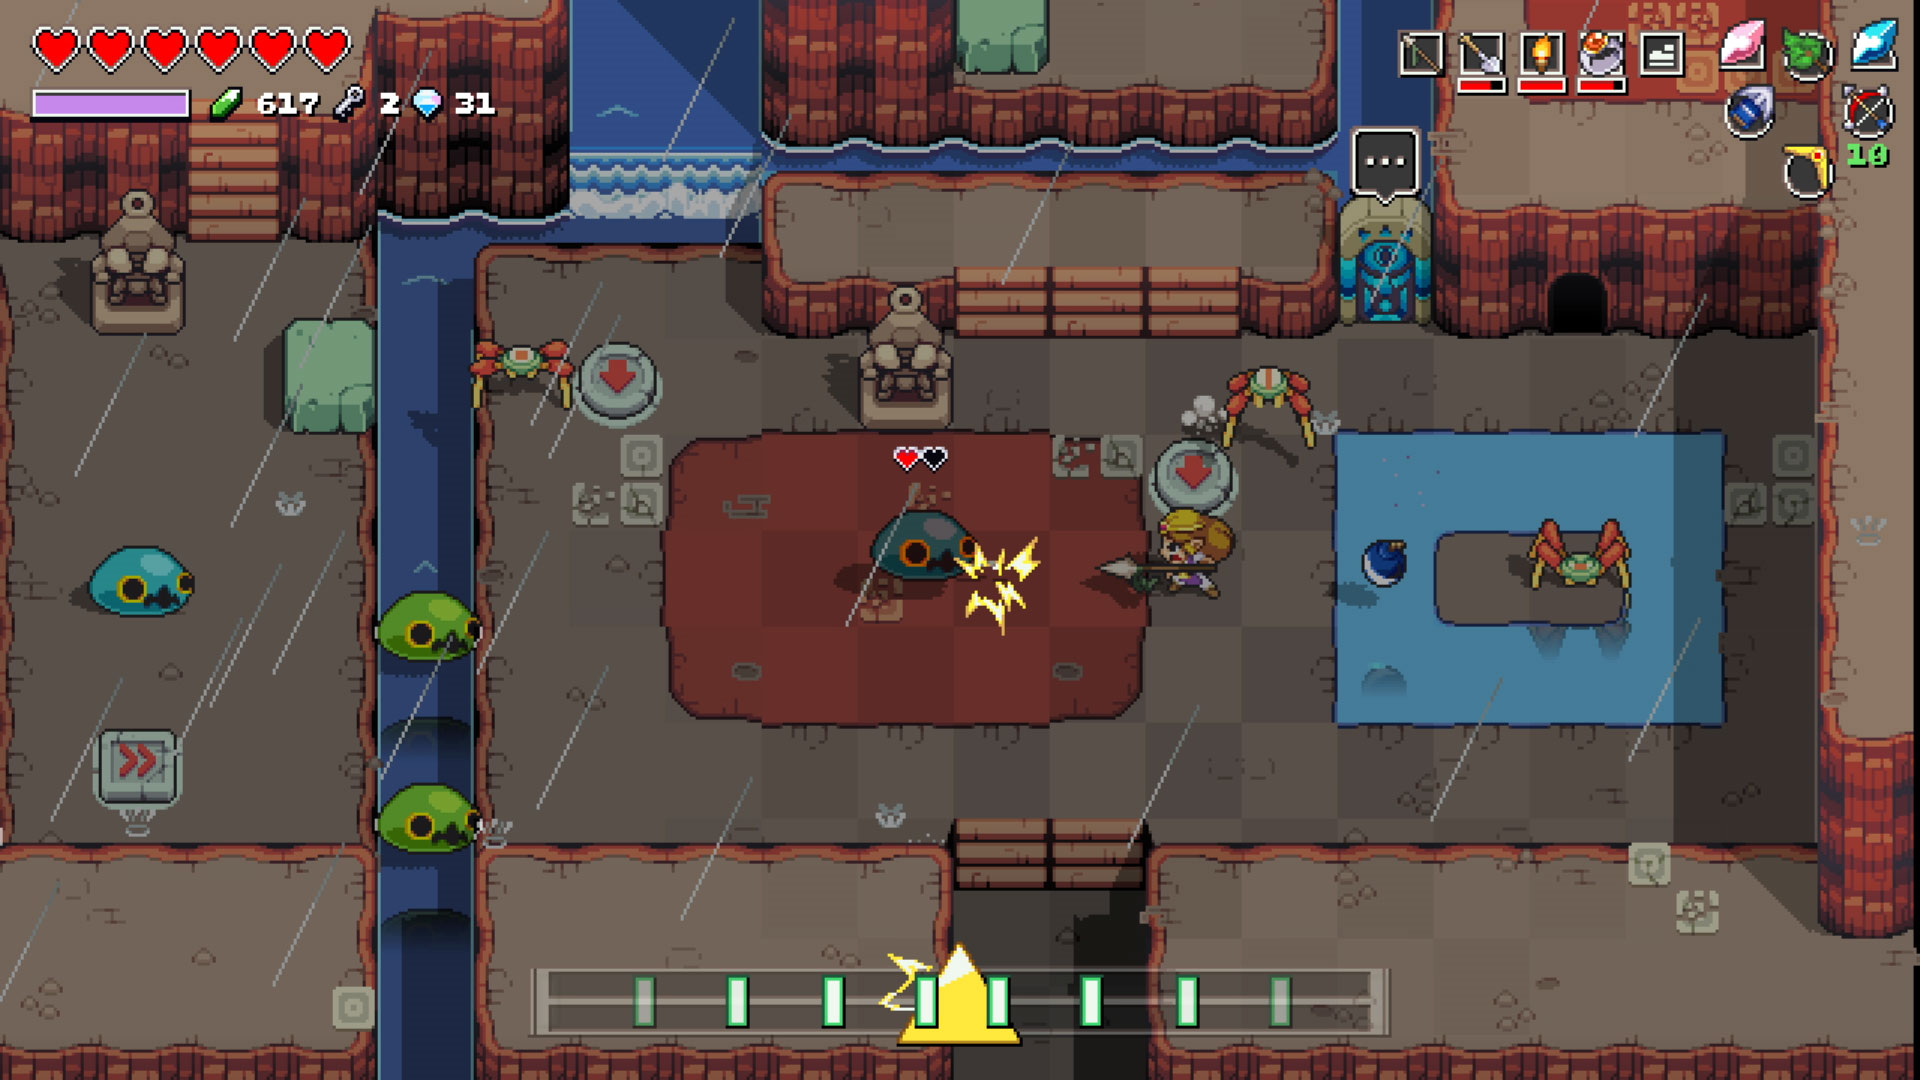 Cadence of Hyrule Co-Op | Does it have multiplayer